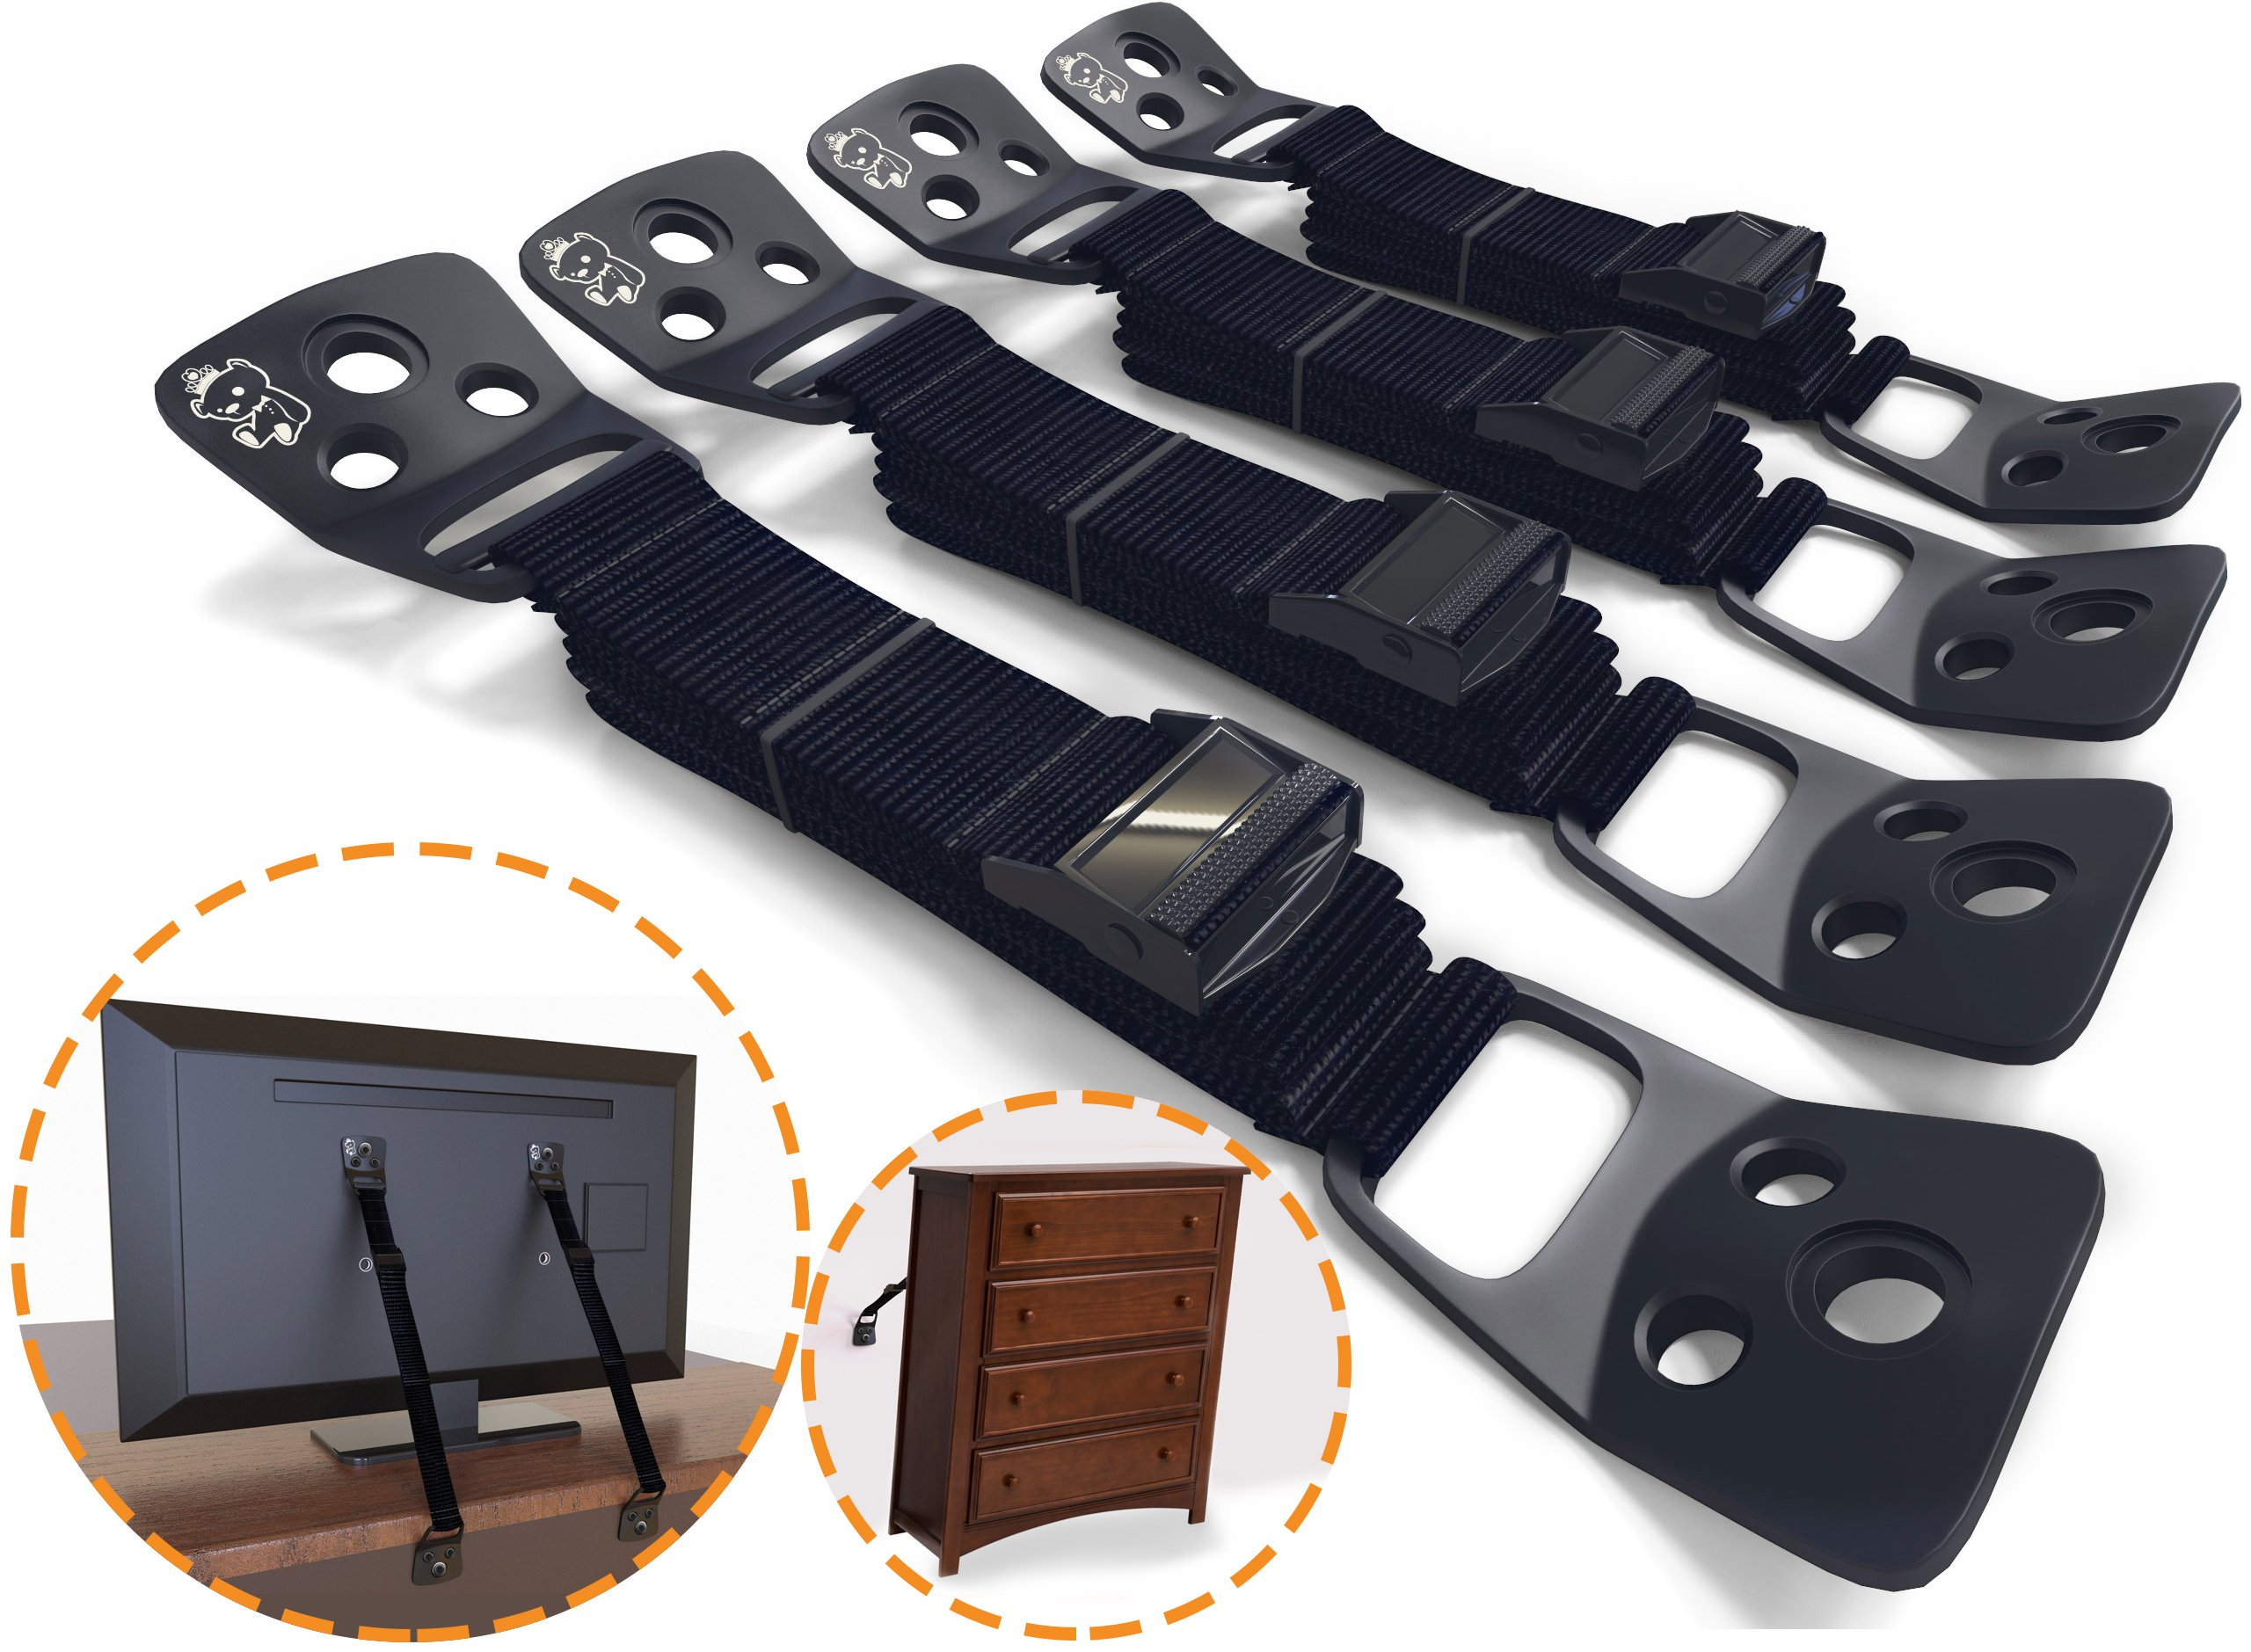 Anti-Tip TV Straps & Furniture Straps| PREMIUM TV Anchors & Furniture Anchors for Child Proofing Home from Tip-Over Incidents (4 Count)